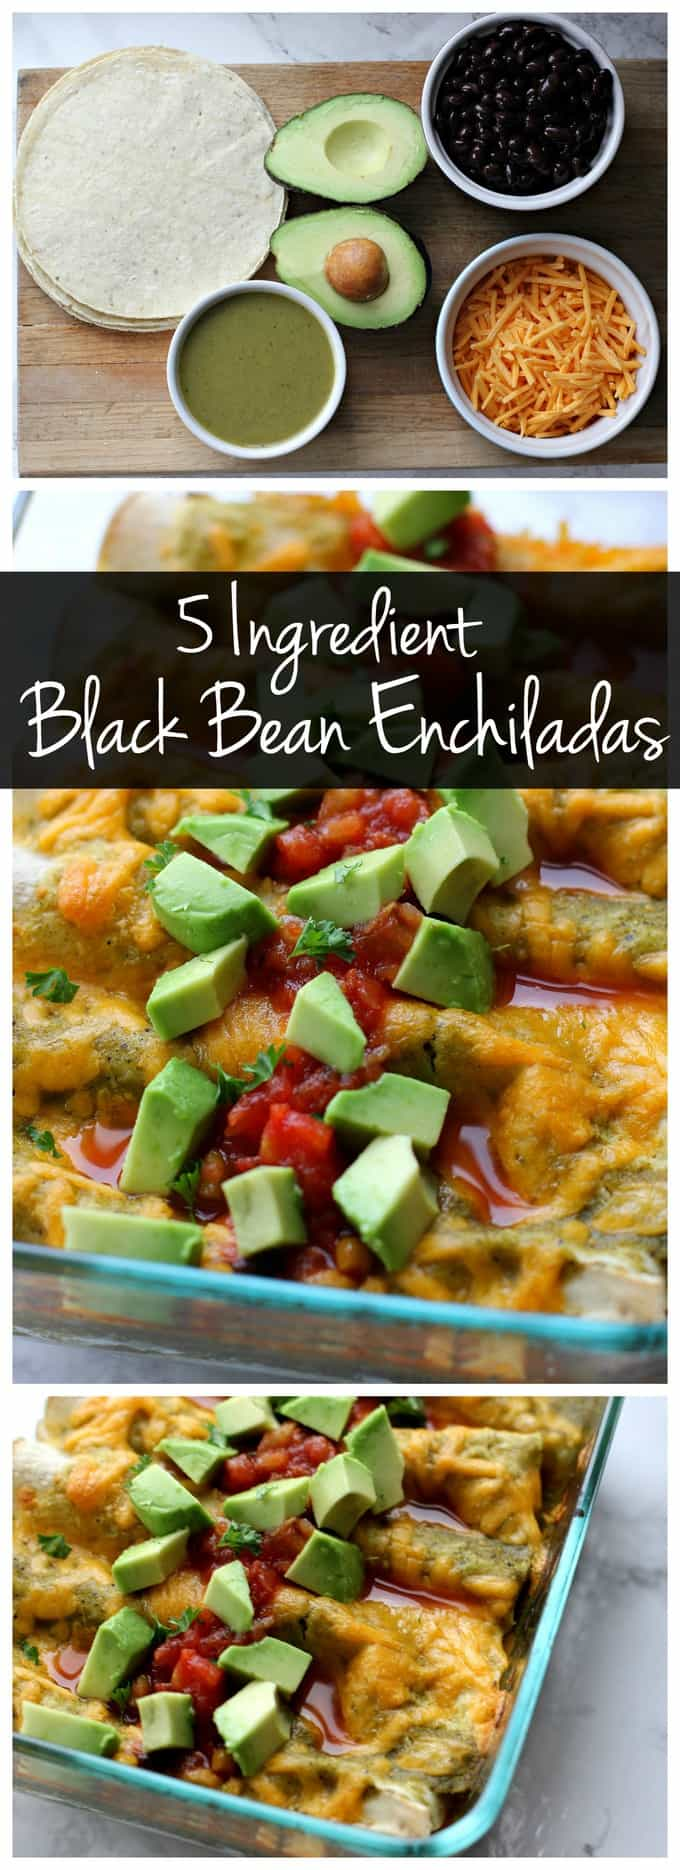 These 5 ingredient black bean enchiladas only take a few minutes to assemble so they're a perfect vegetarian weeknight recipe! Try these with your favorite salsa verde. You won't believe how easy this recipe is!